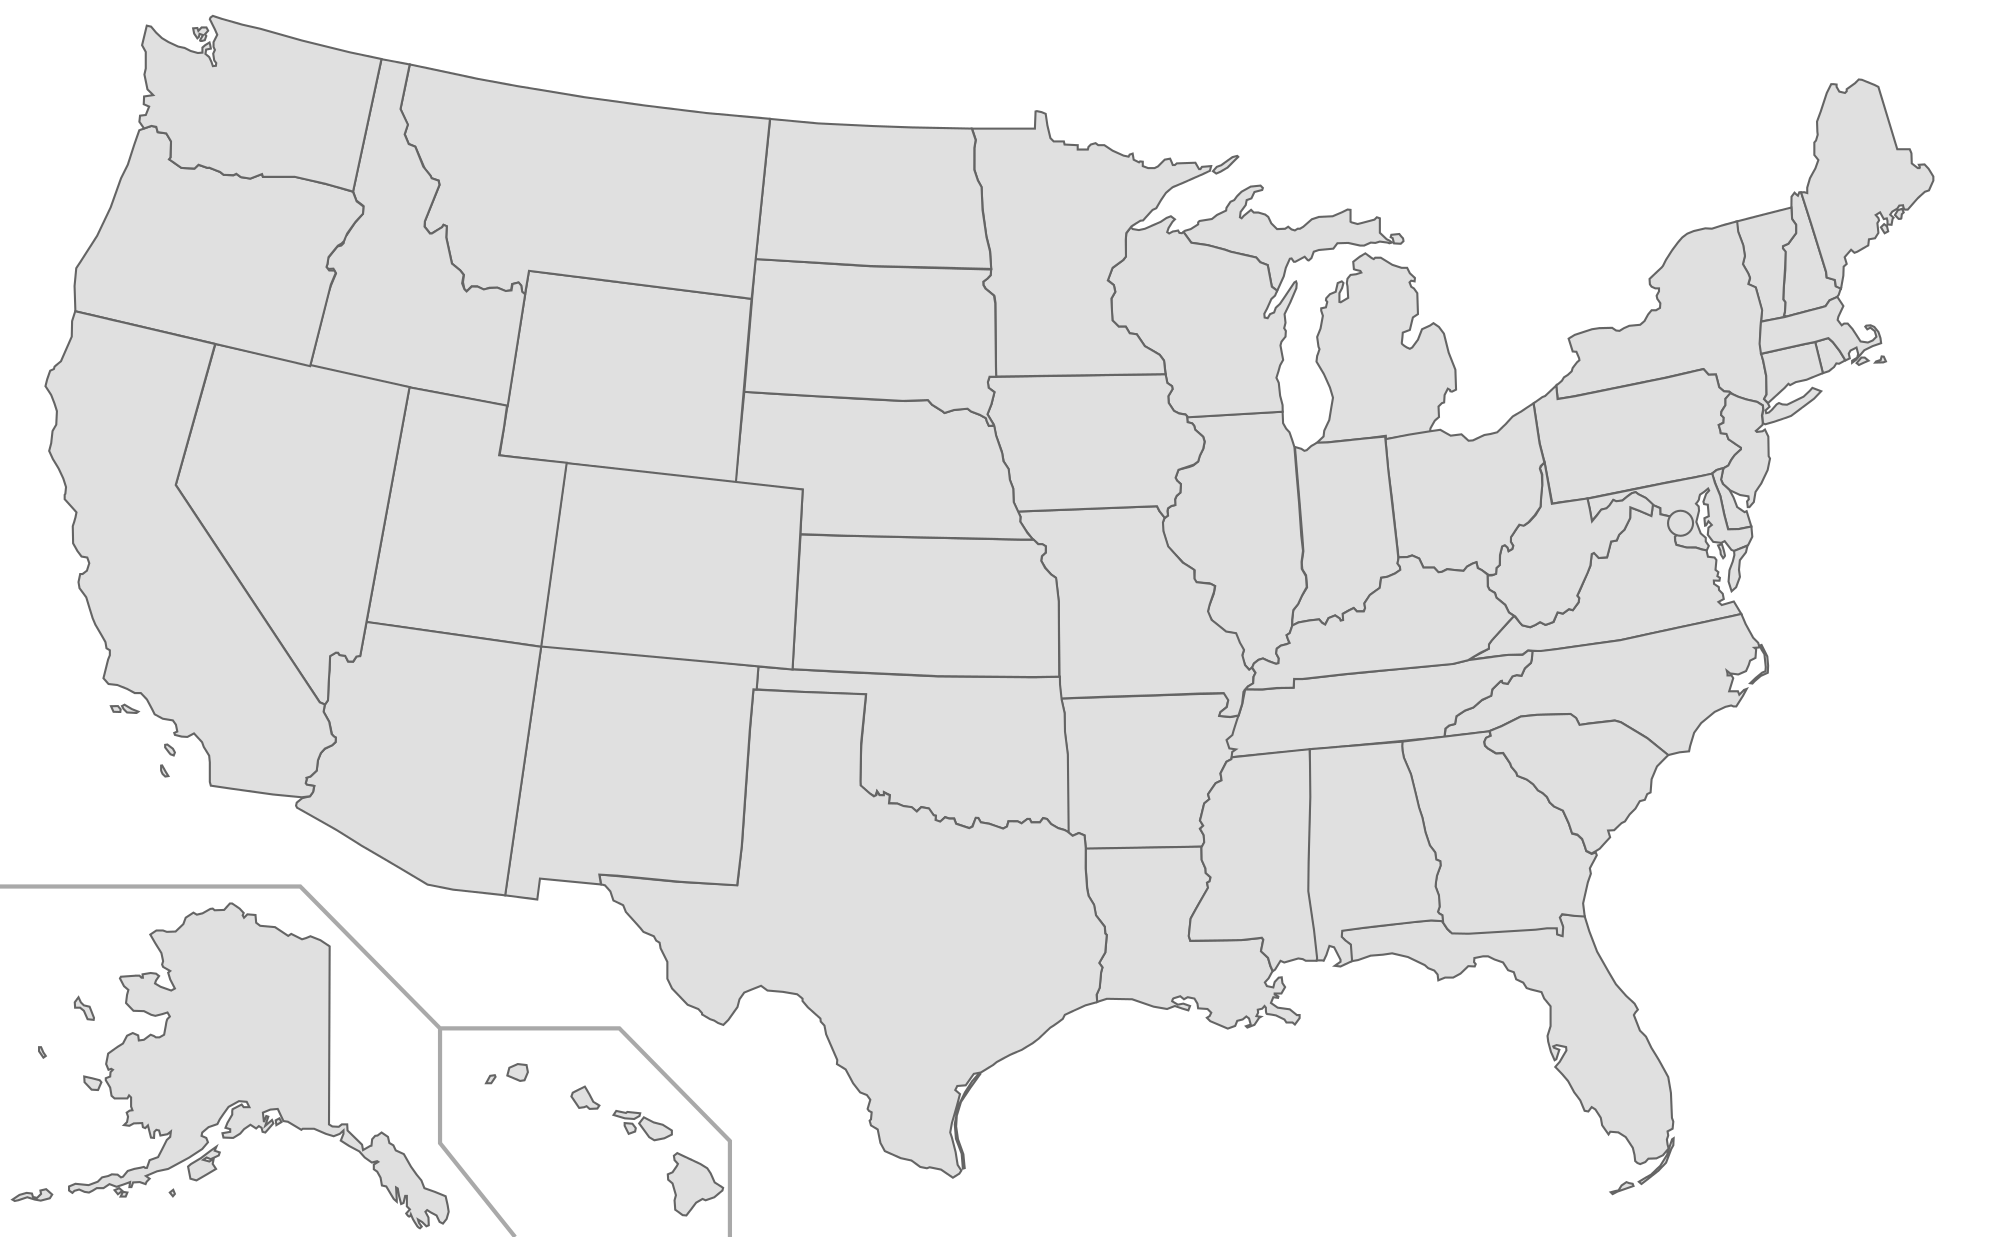 FileBlank US Map With Labelssvg Wikimedia Commons - Outline map of us states